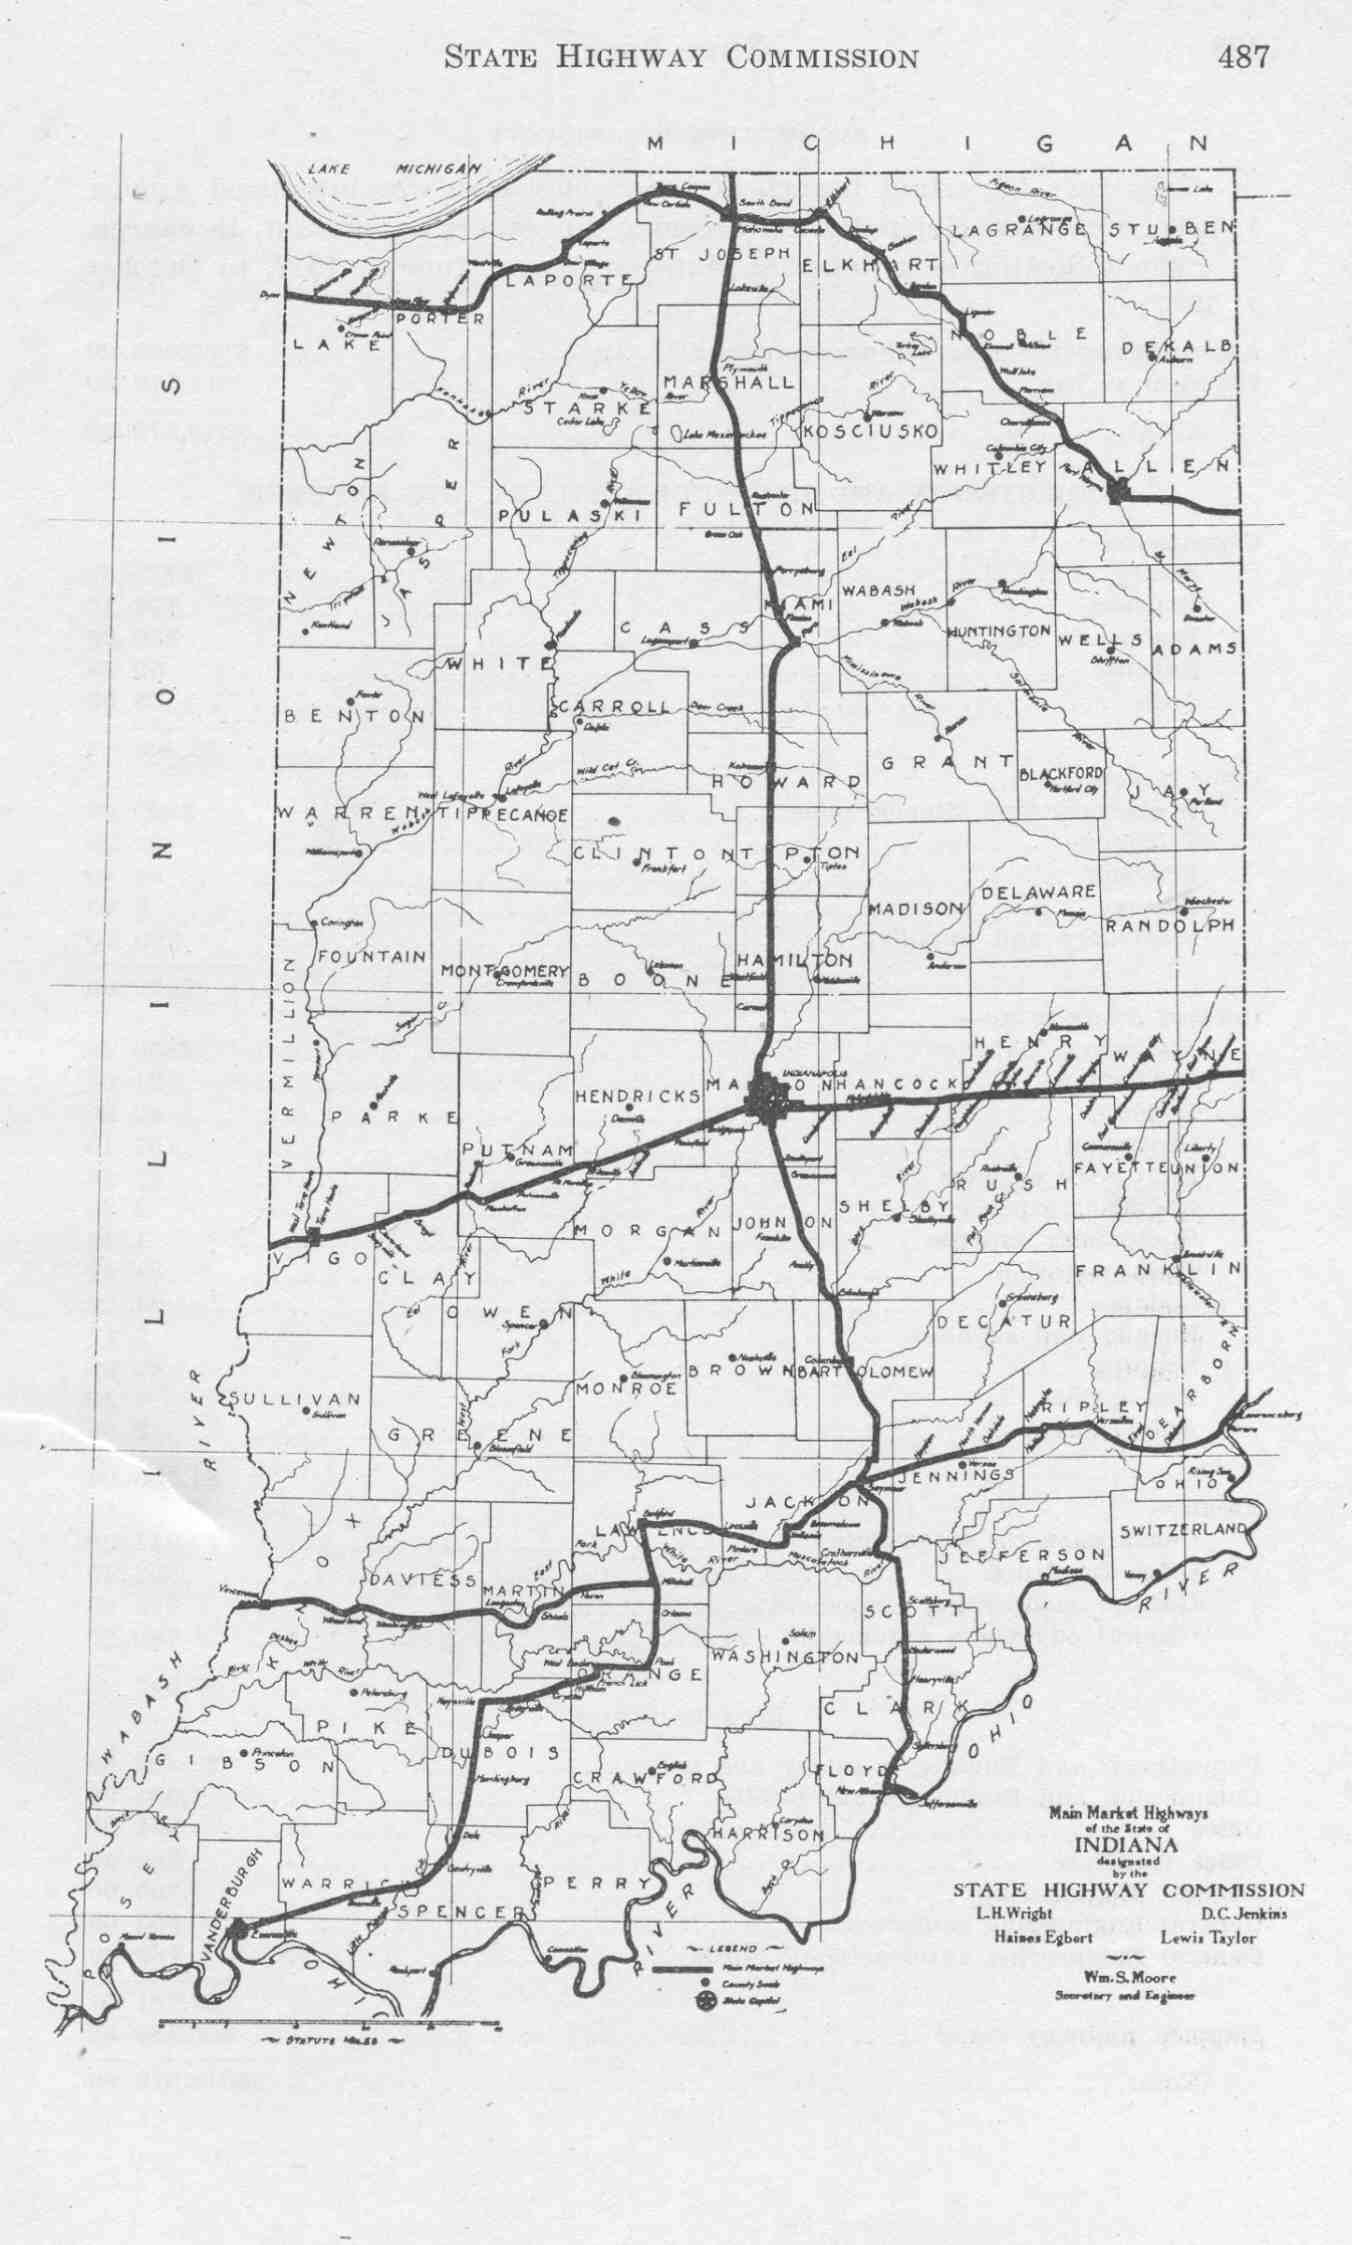 Indiana State Highway Map And State Highway Commission - Indiana on us map